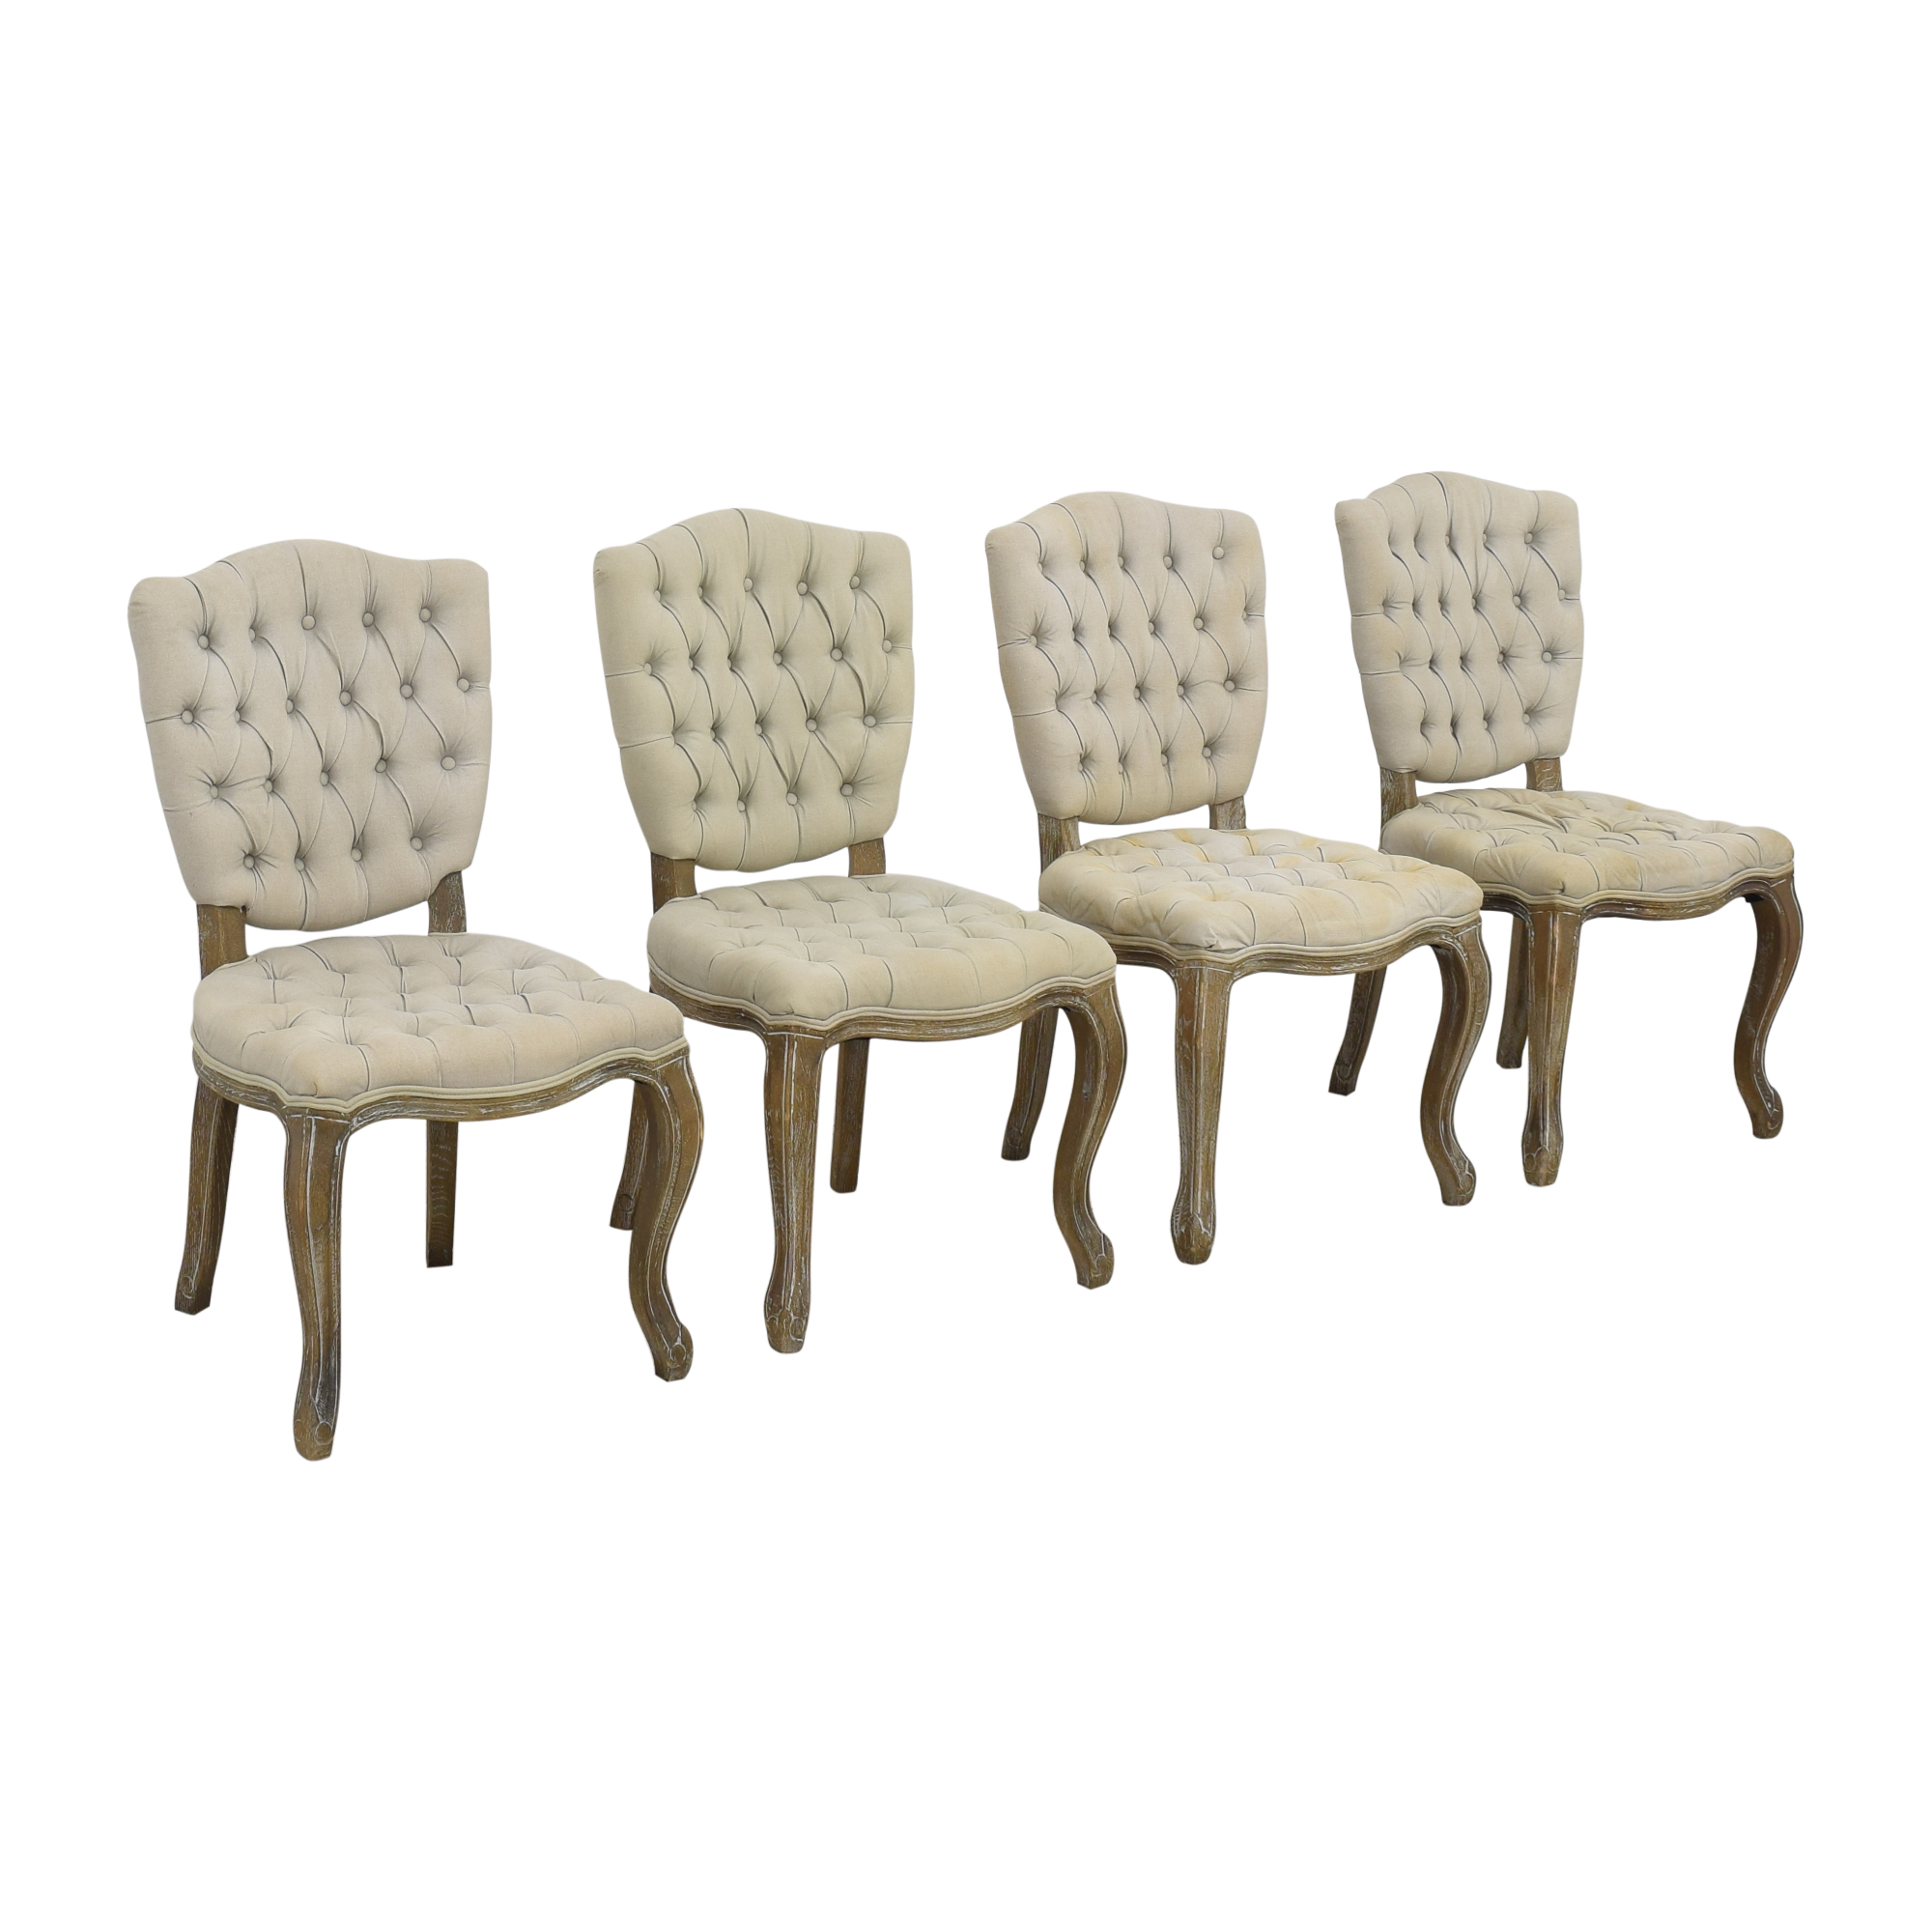 Arhaus Arhaus Country French Tufted Dining Chairs coupon